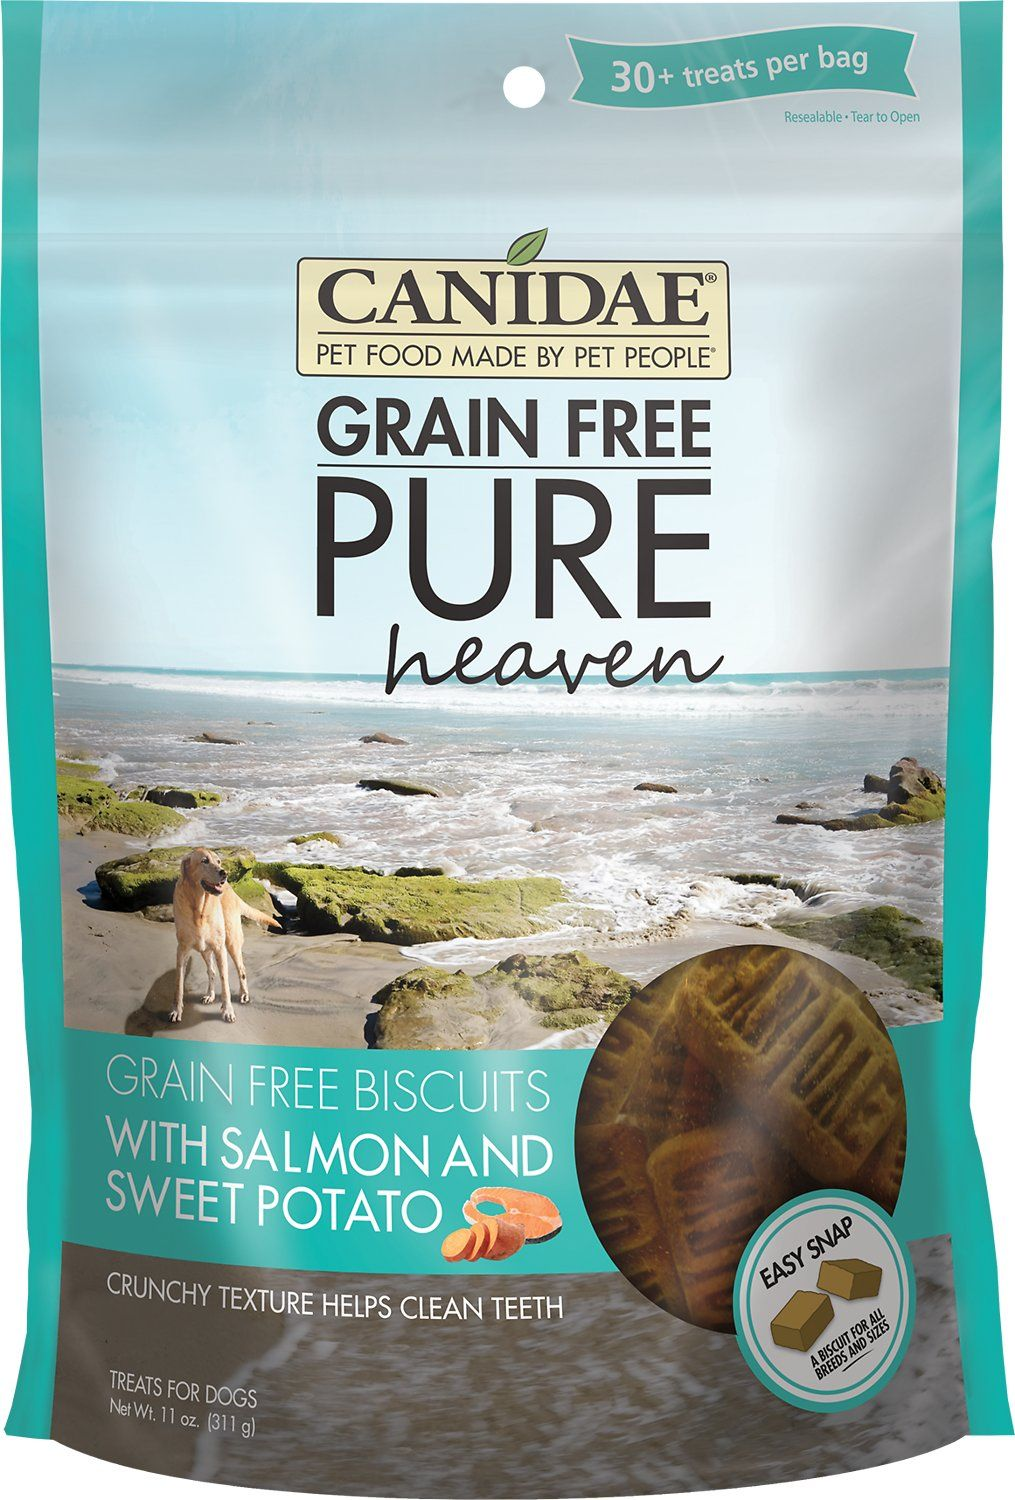 CANIDAE GrainFree PURE Heaven Biscuits with Salmon